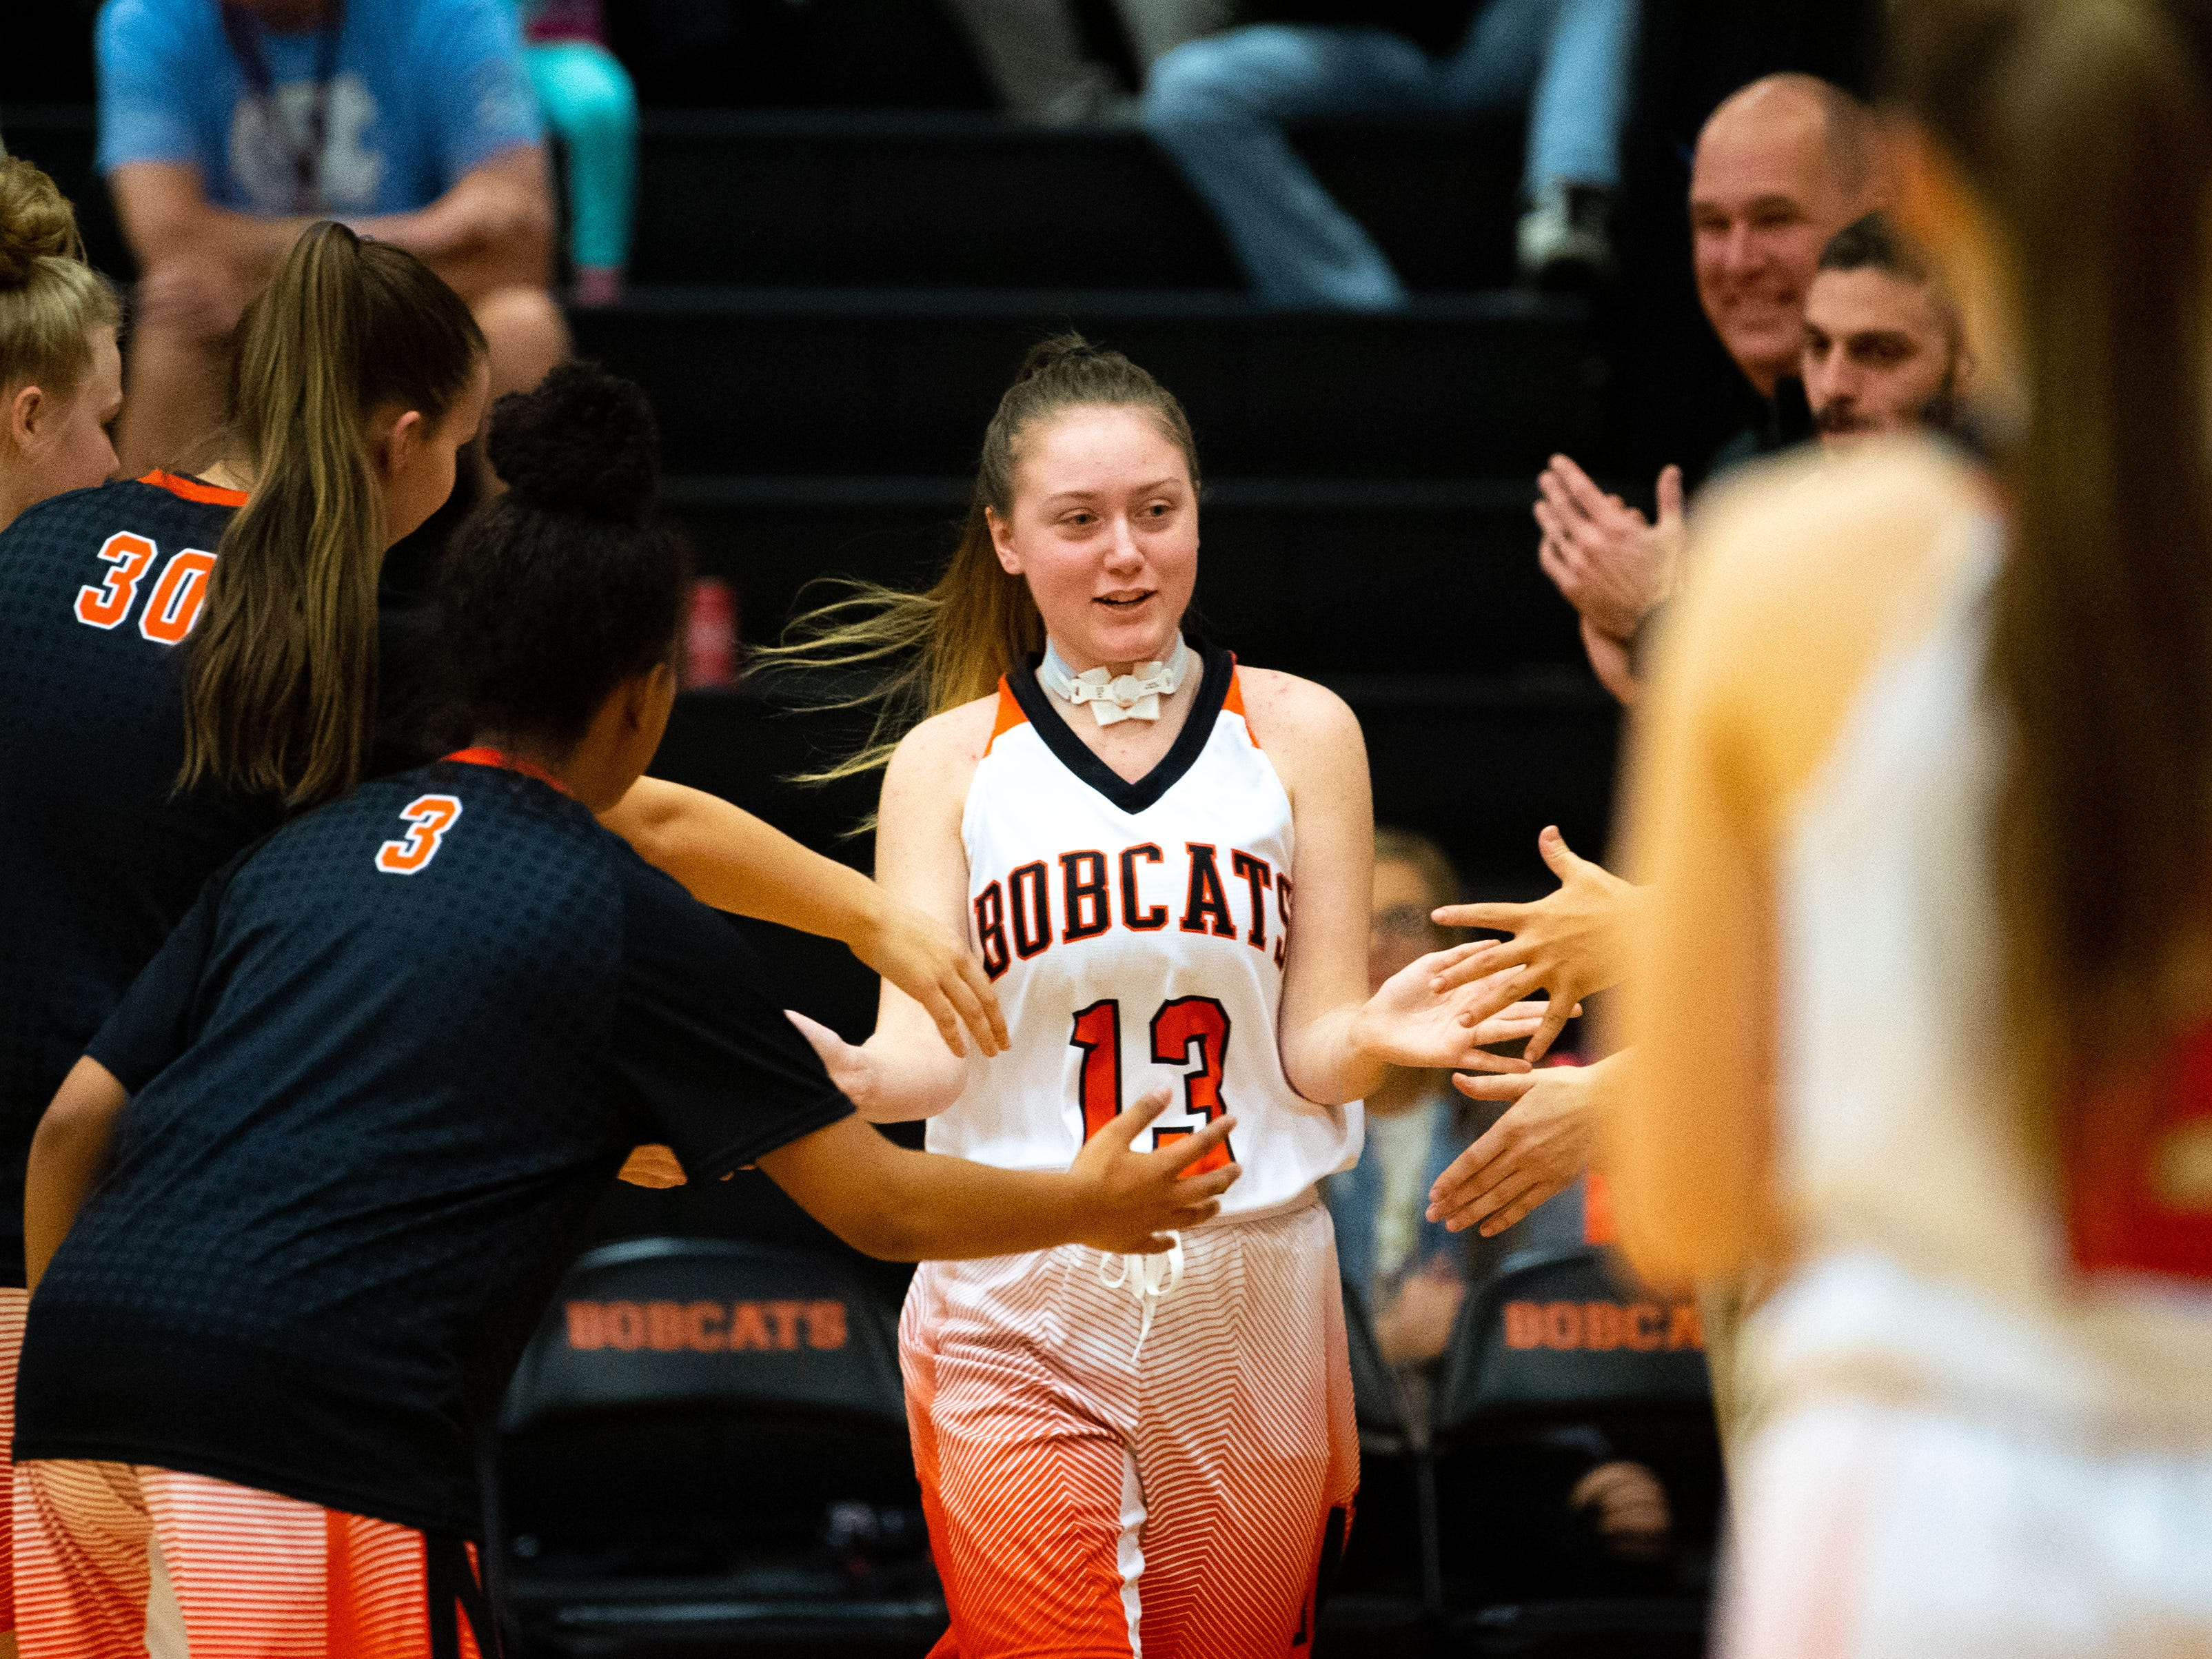 Audrey Johnson's teammates happily welcome her to the floor, December 12, 2018.